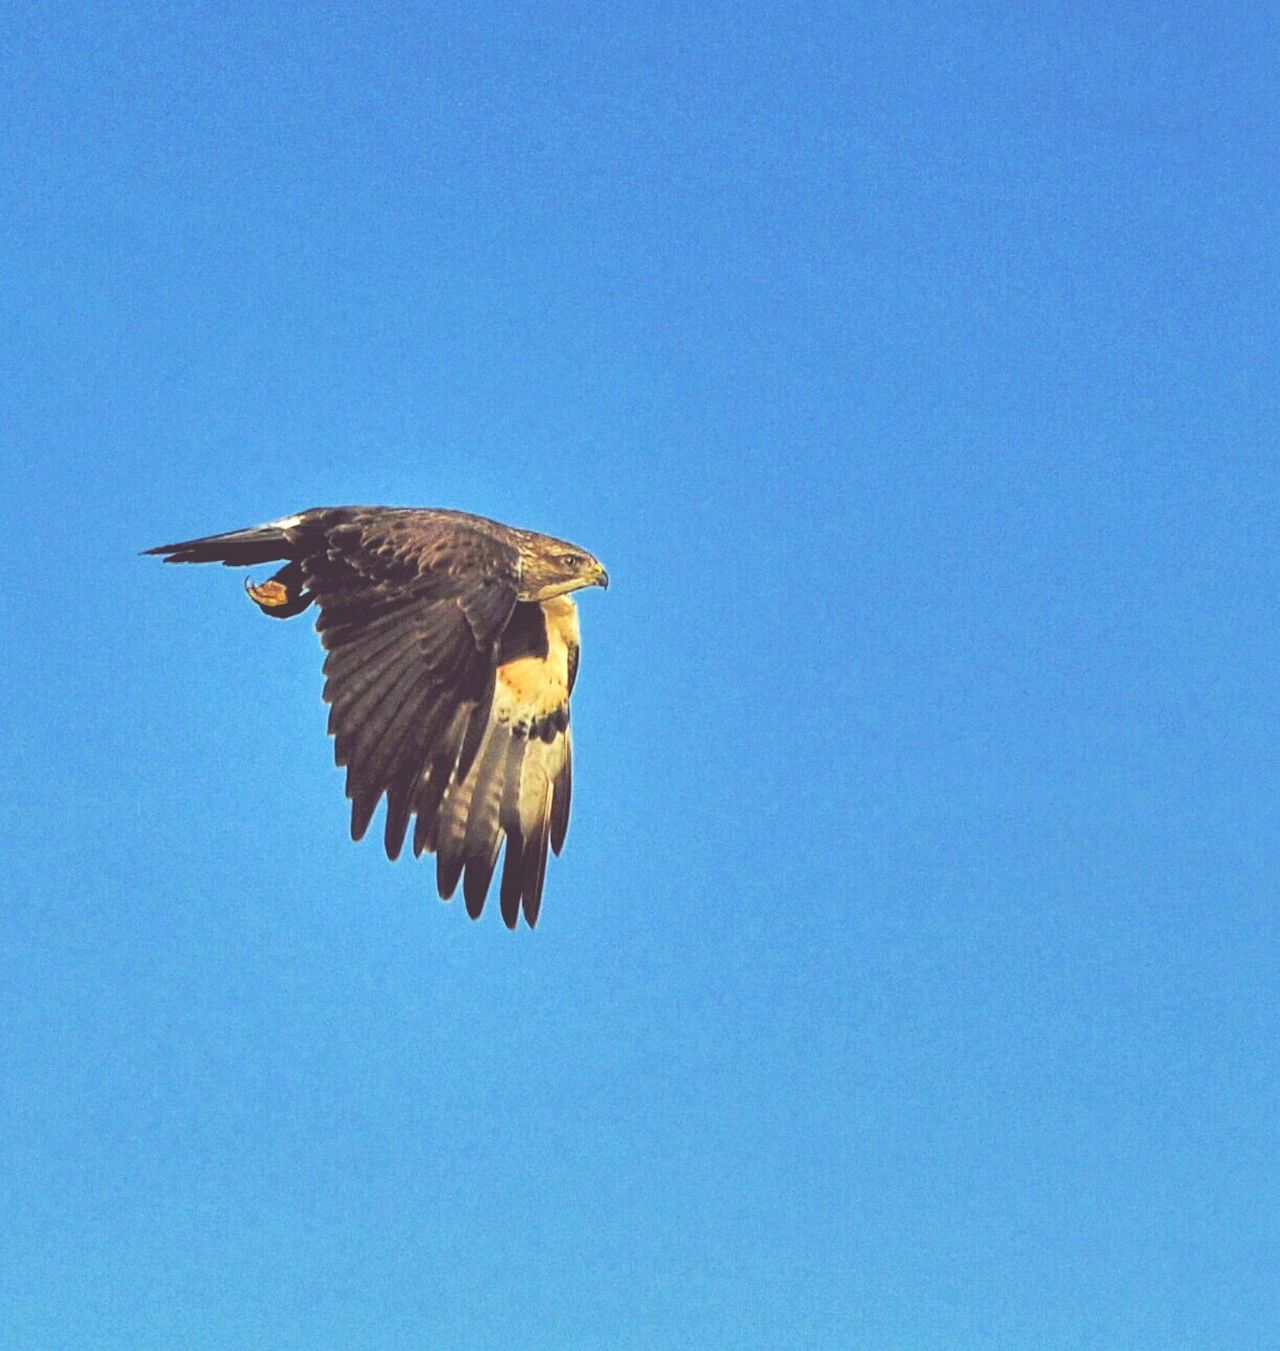 One Animal Bird Animal Themes Blue Wildlife Animals In The Wild Clear Sky Copy Space Low Angle View Flying Nature Day No People Beauty In Nature Hawker Centre Nikon_photography Nikon Animals In The Wild Nikon Photography Nikonphotographers Predatory Birds